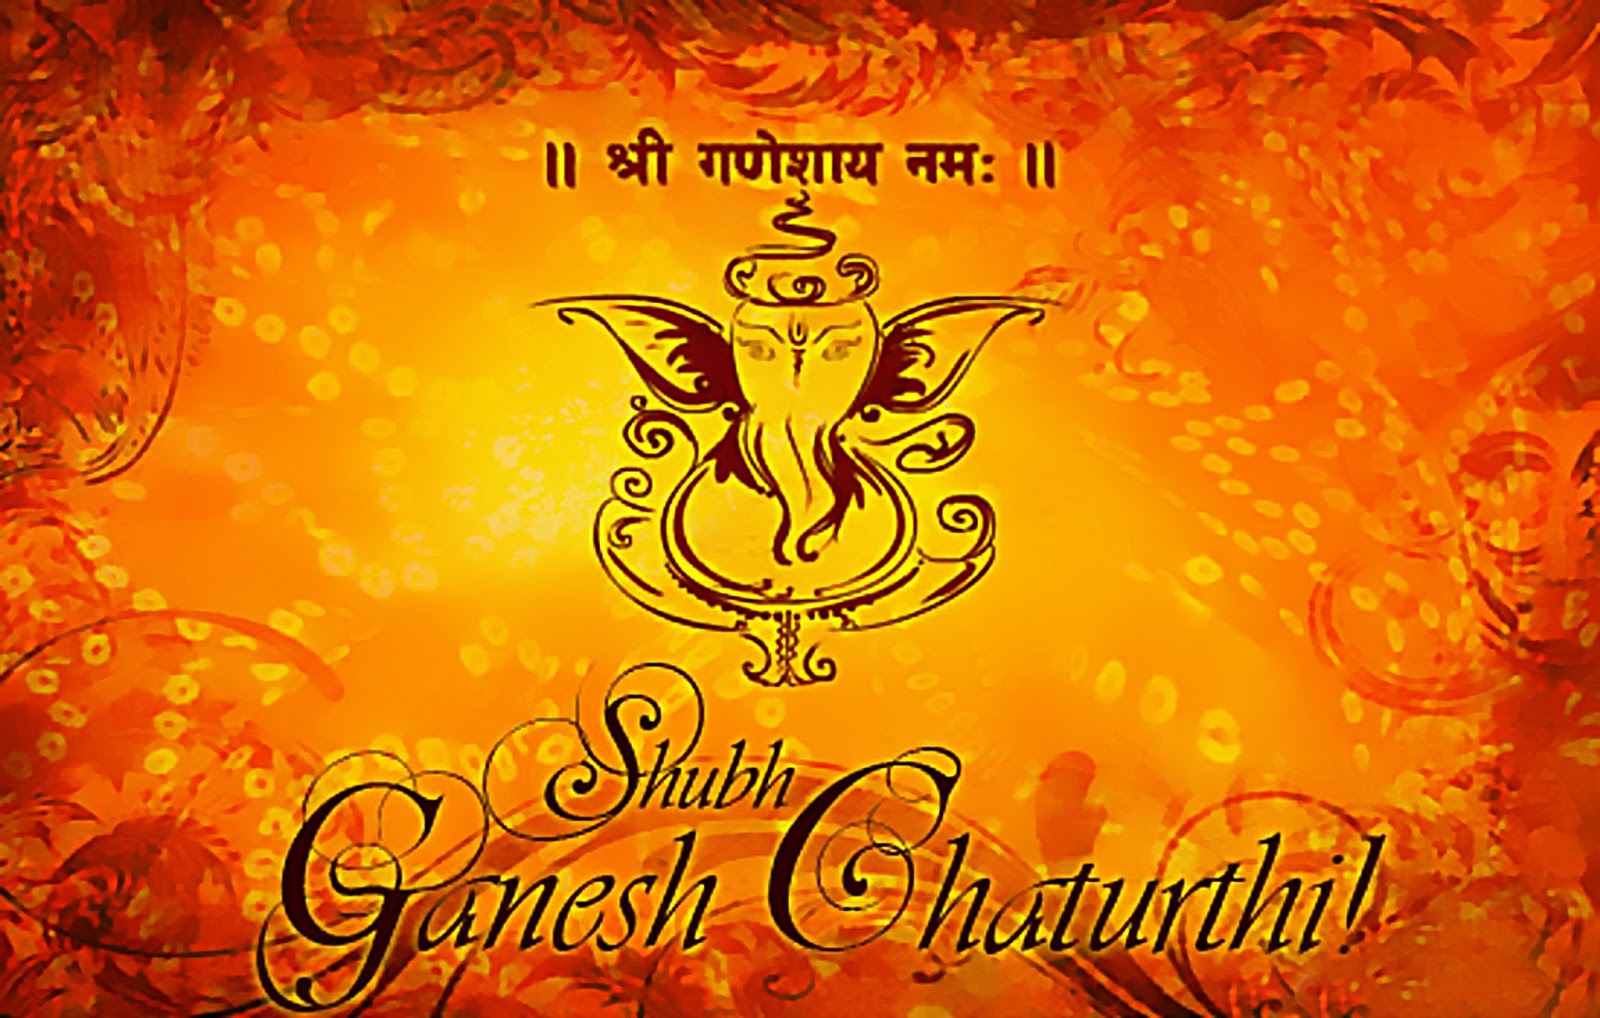 Ganesh Chaturthi Wishes, Quotes, Messages & SMS 2021